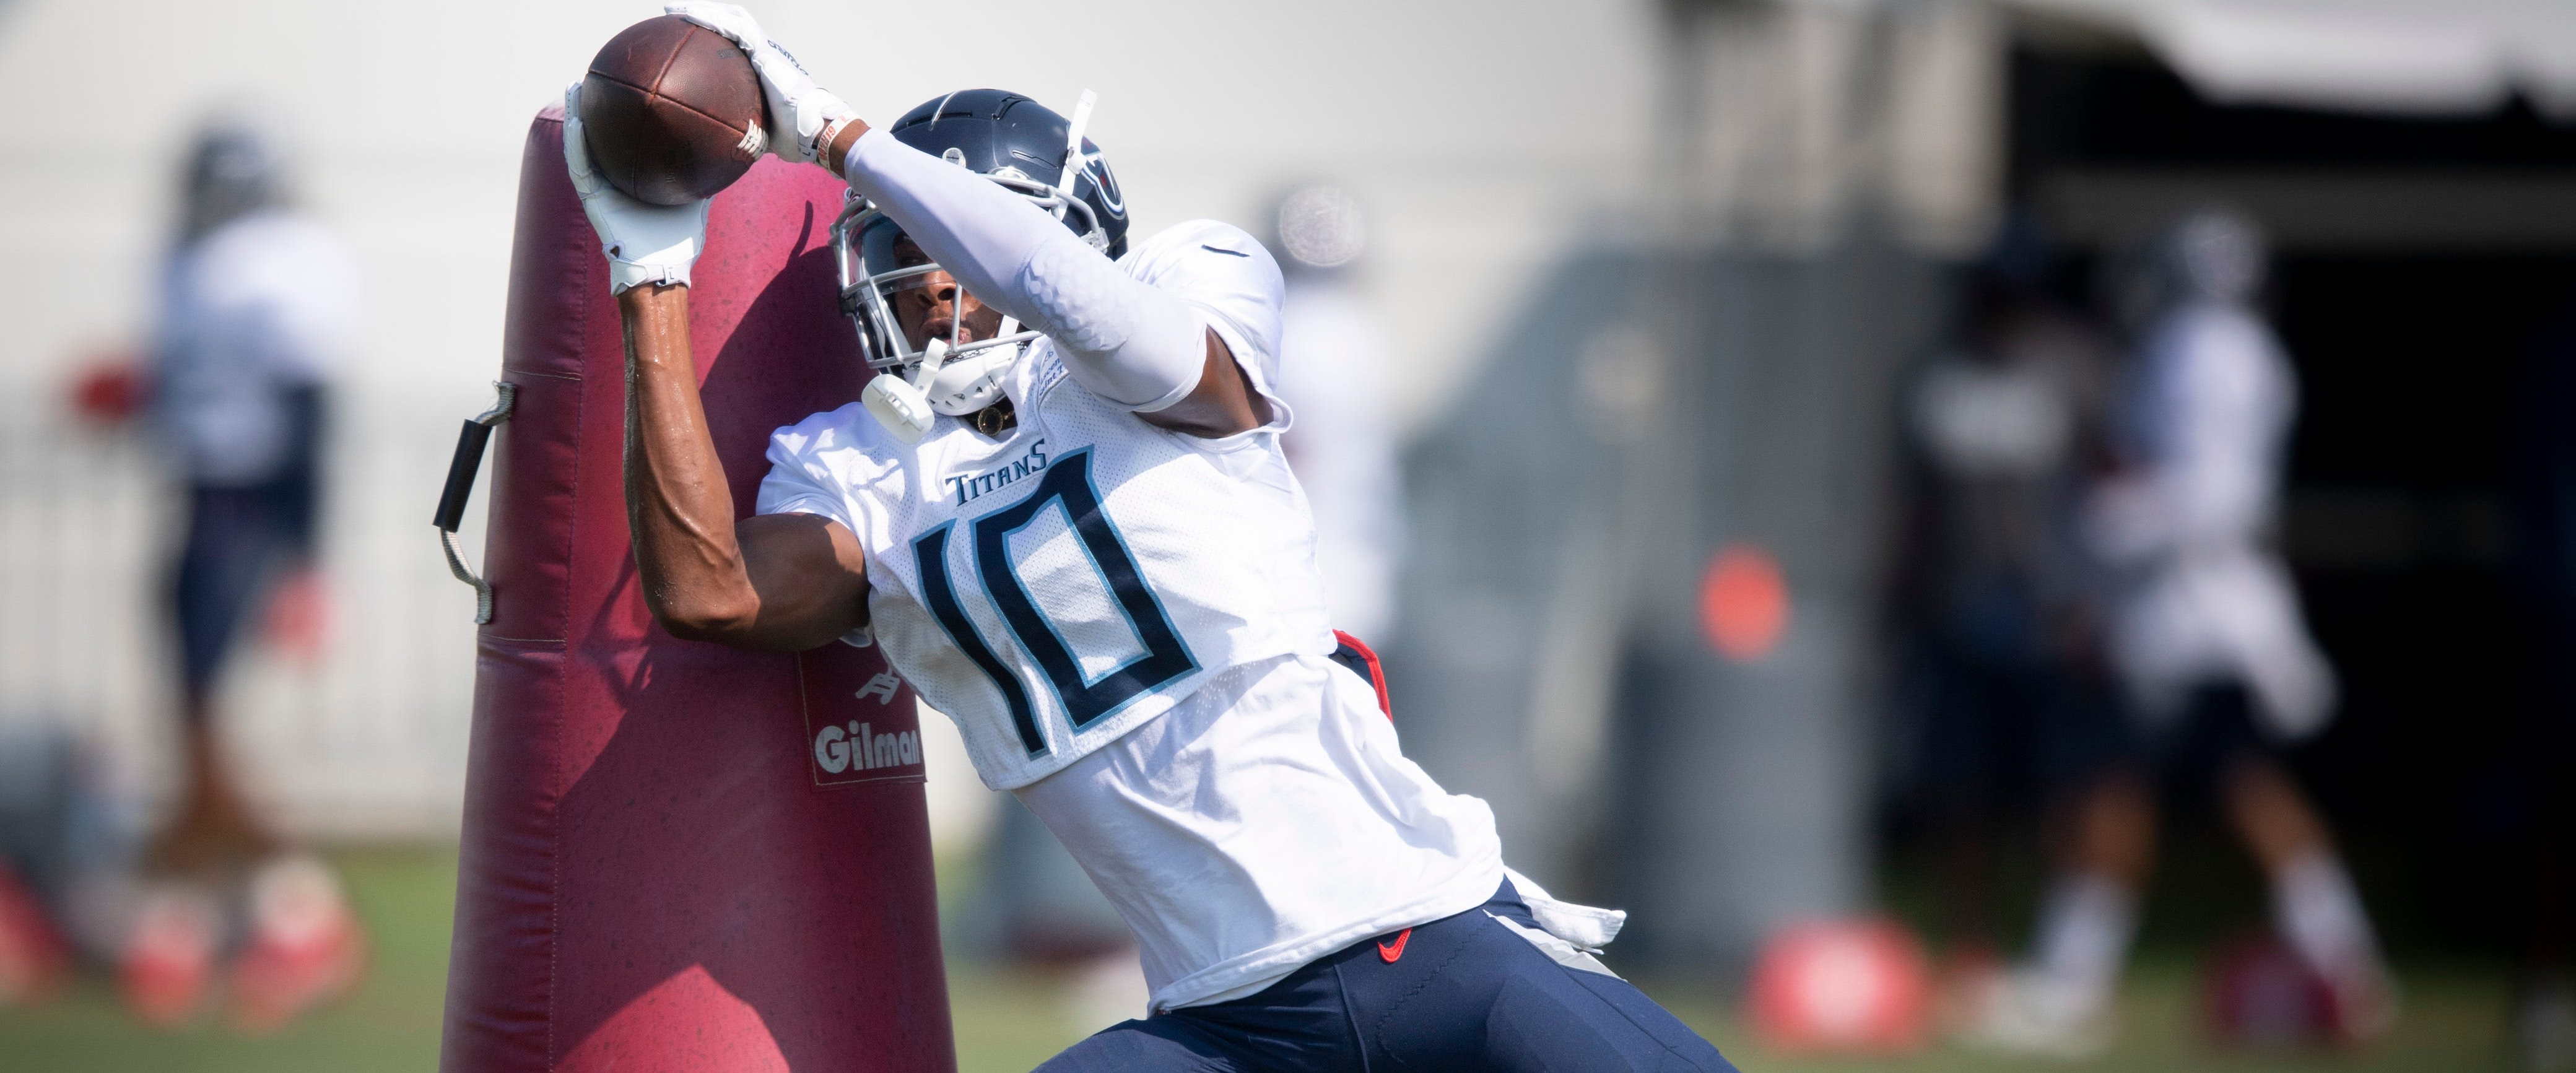 Titans: Rookie Dez Fitzpatrick is in danger of getting cut